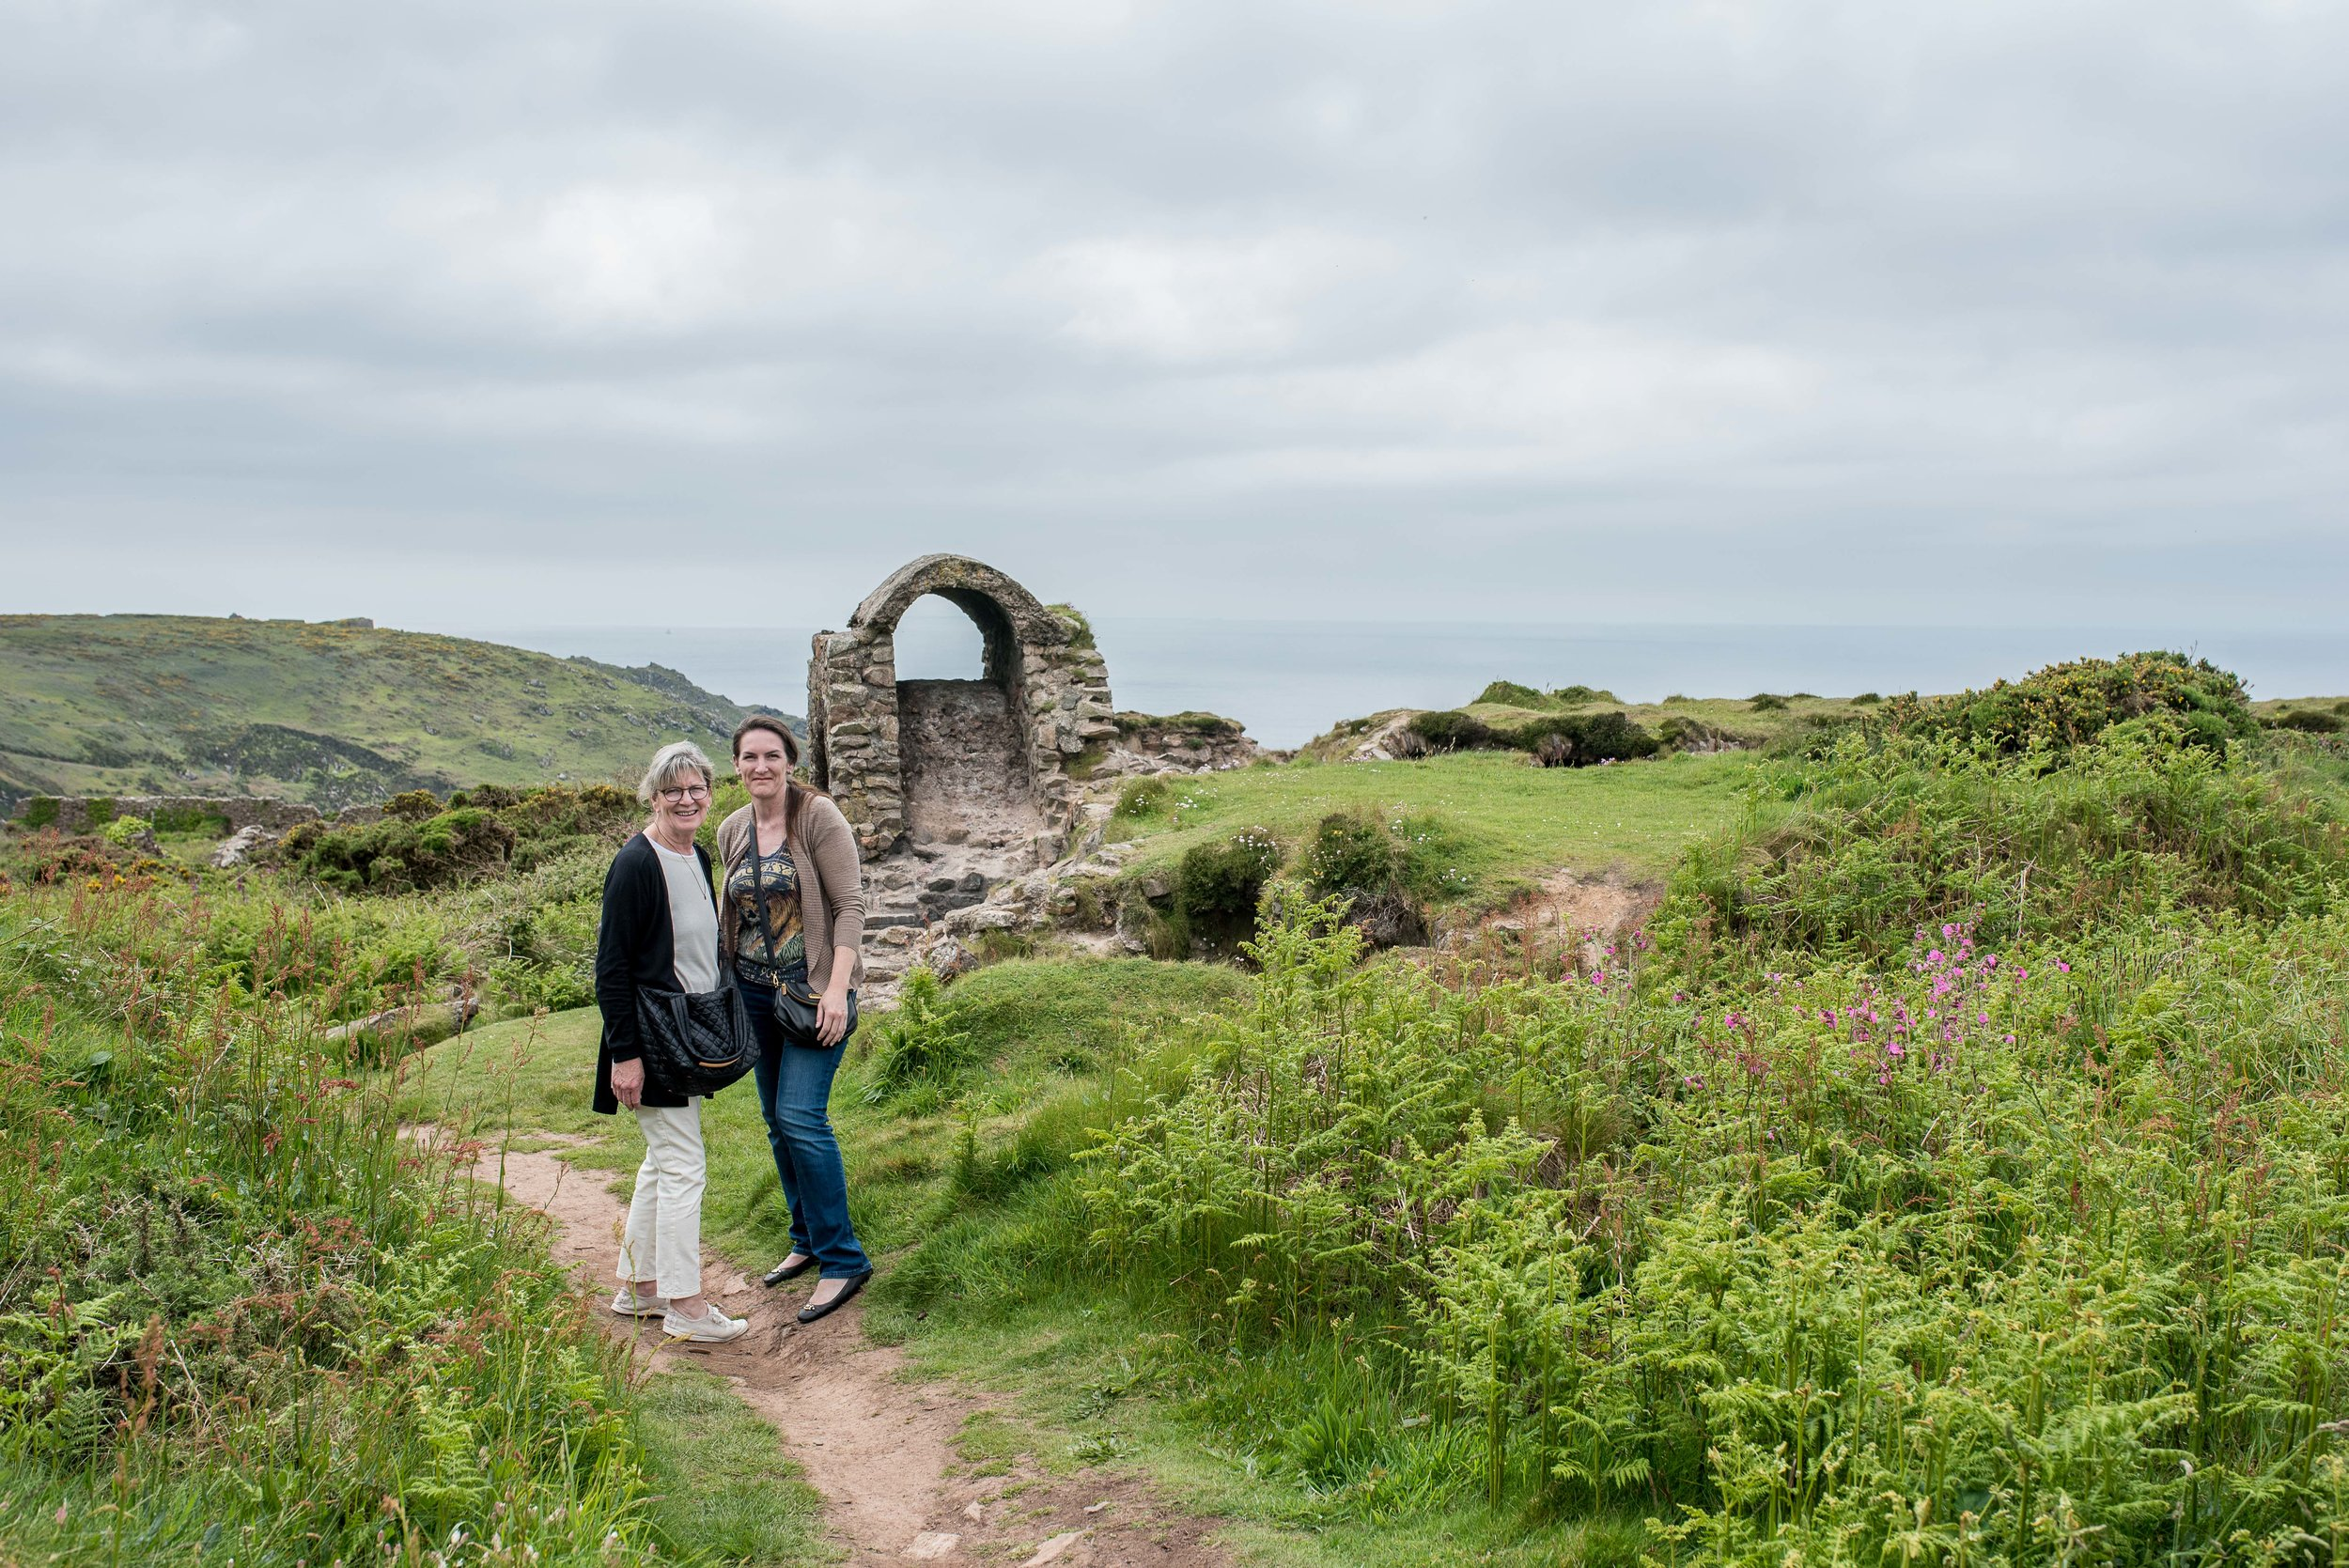 Next! One of our absolute favorite stops. No. 11, the  tin mines in Bottalack .